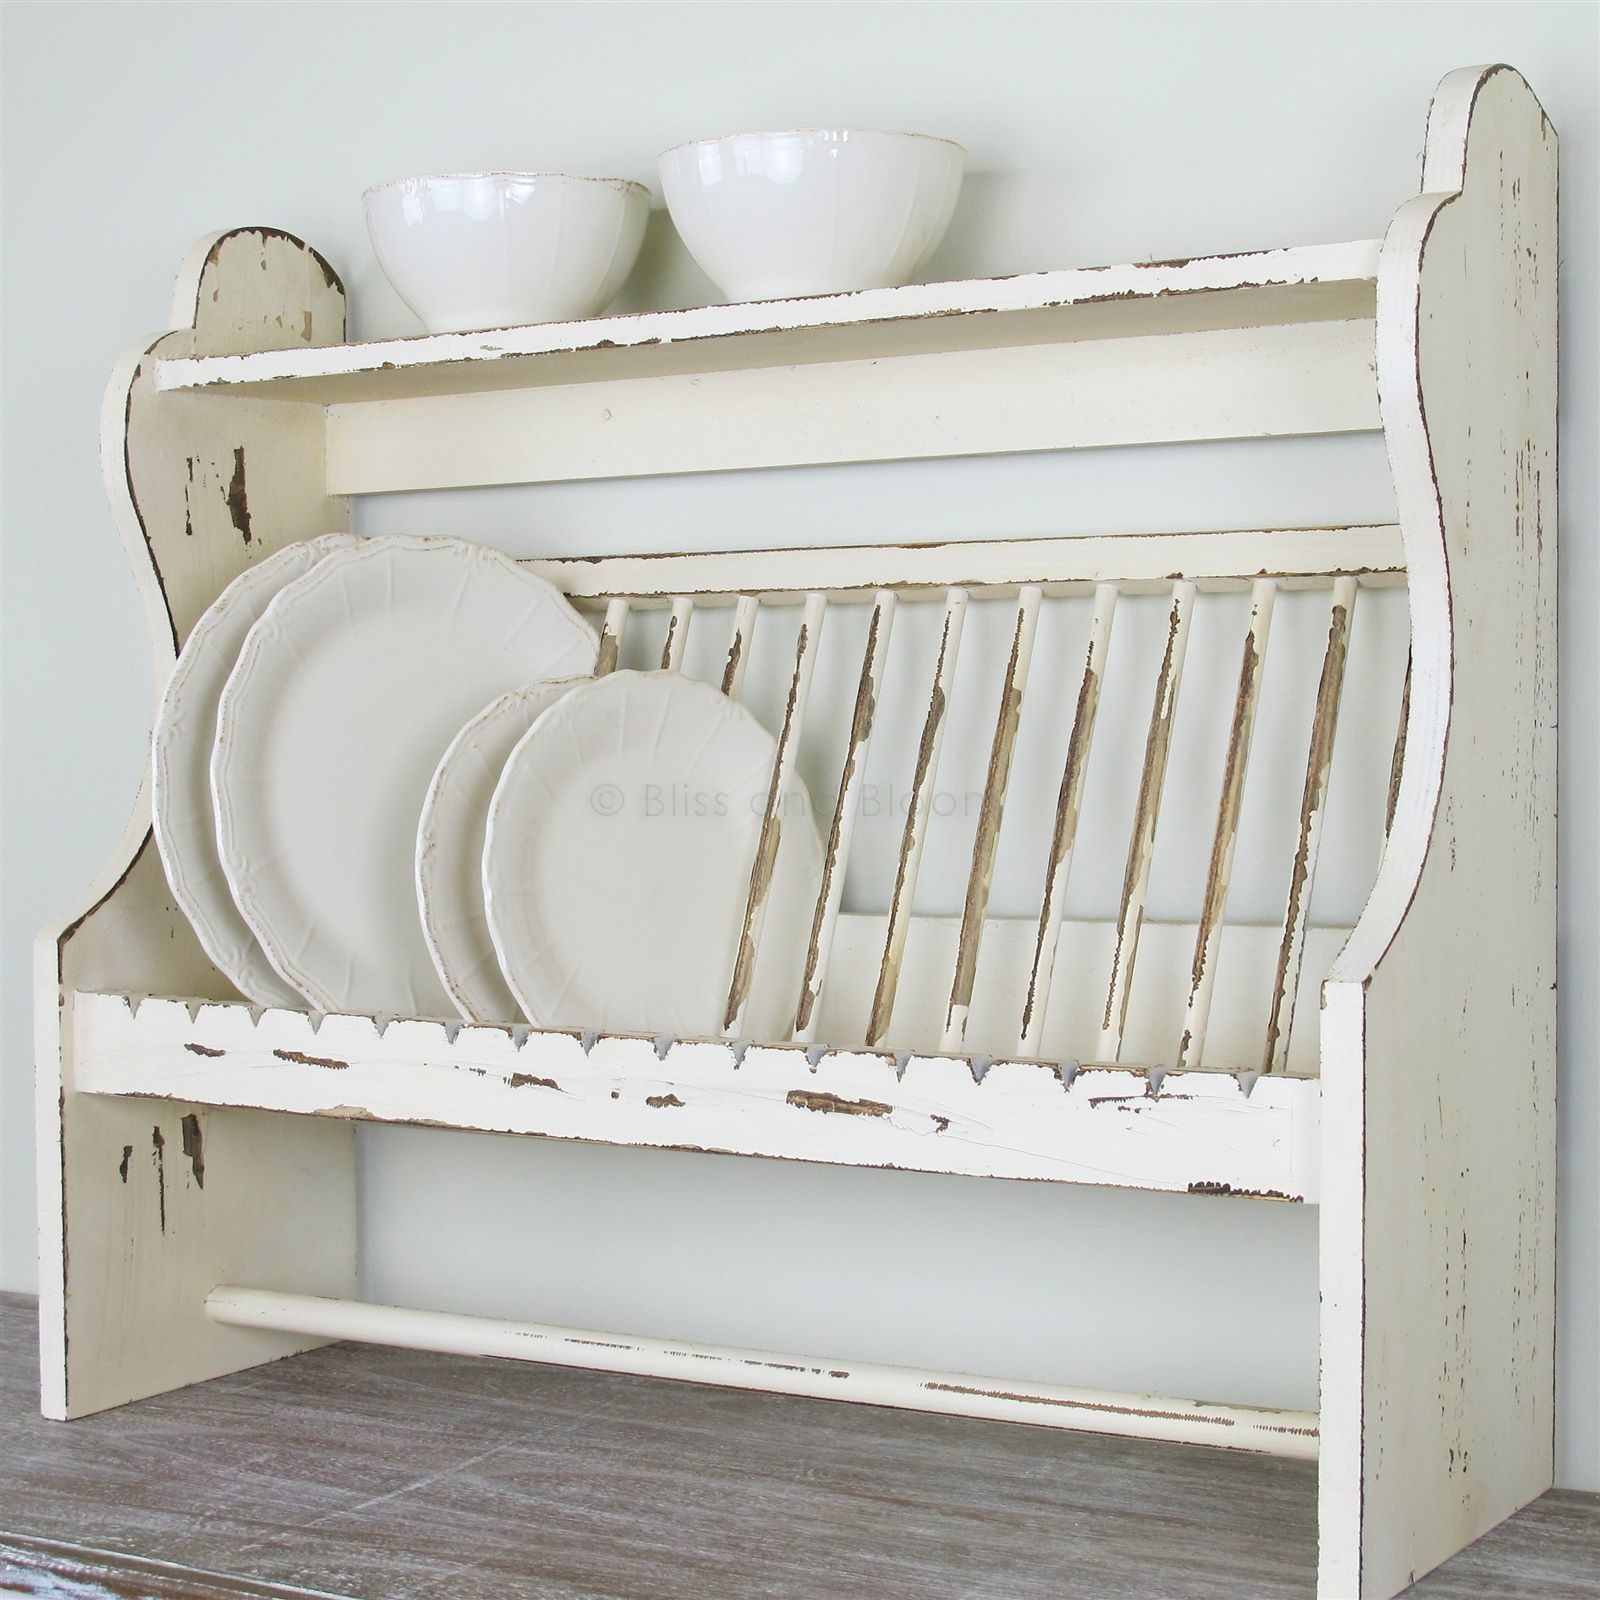 Wooden Plate Rack Shelf Bliss And Bloom